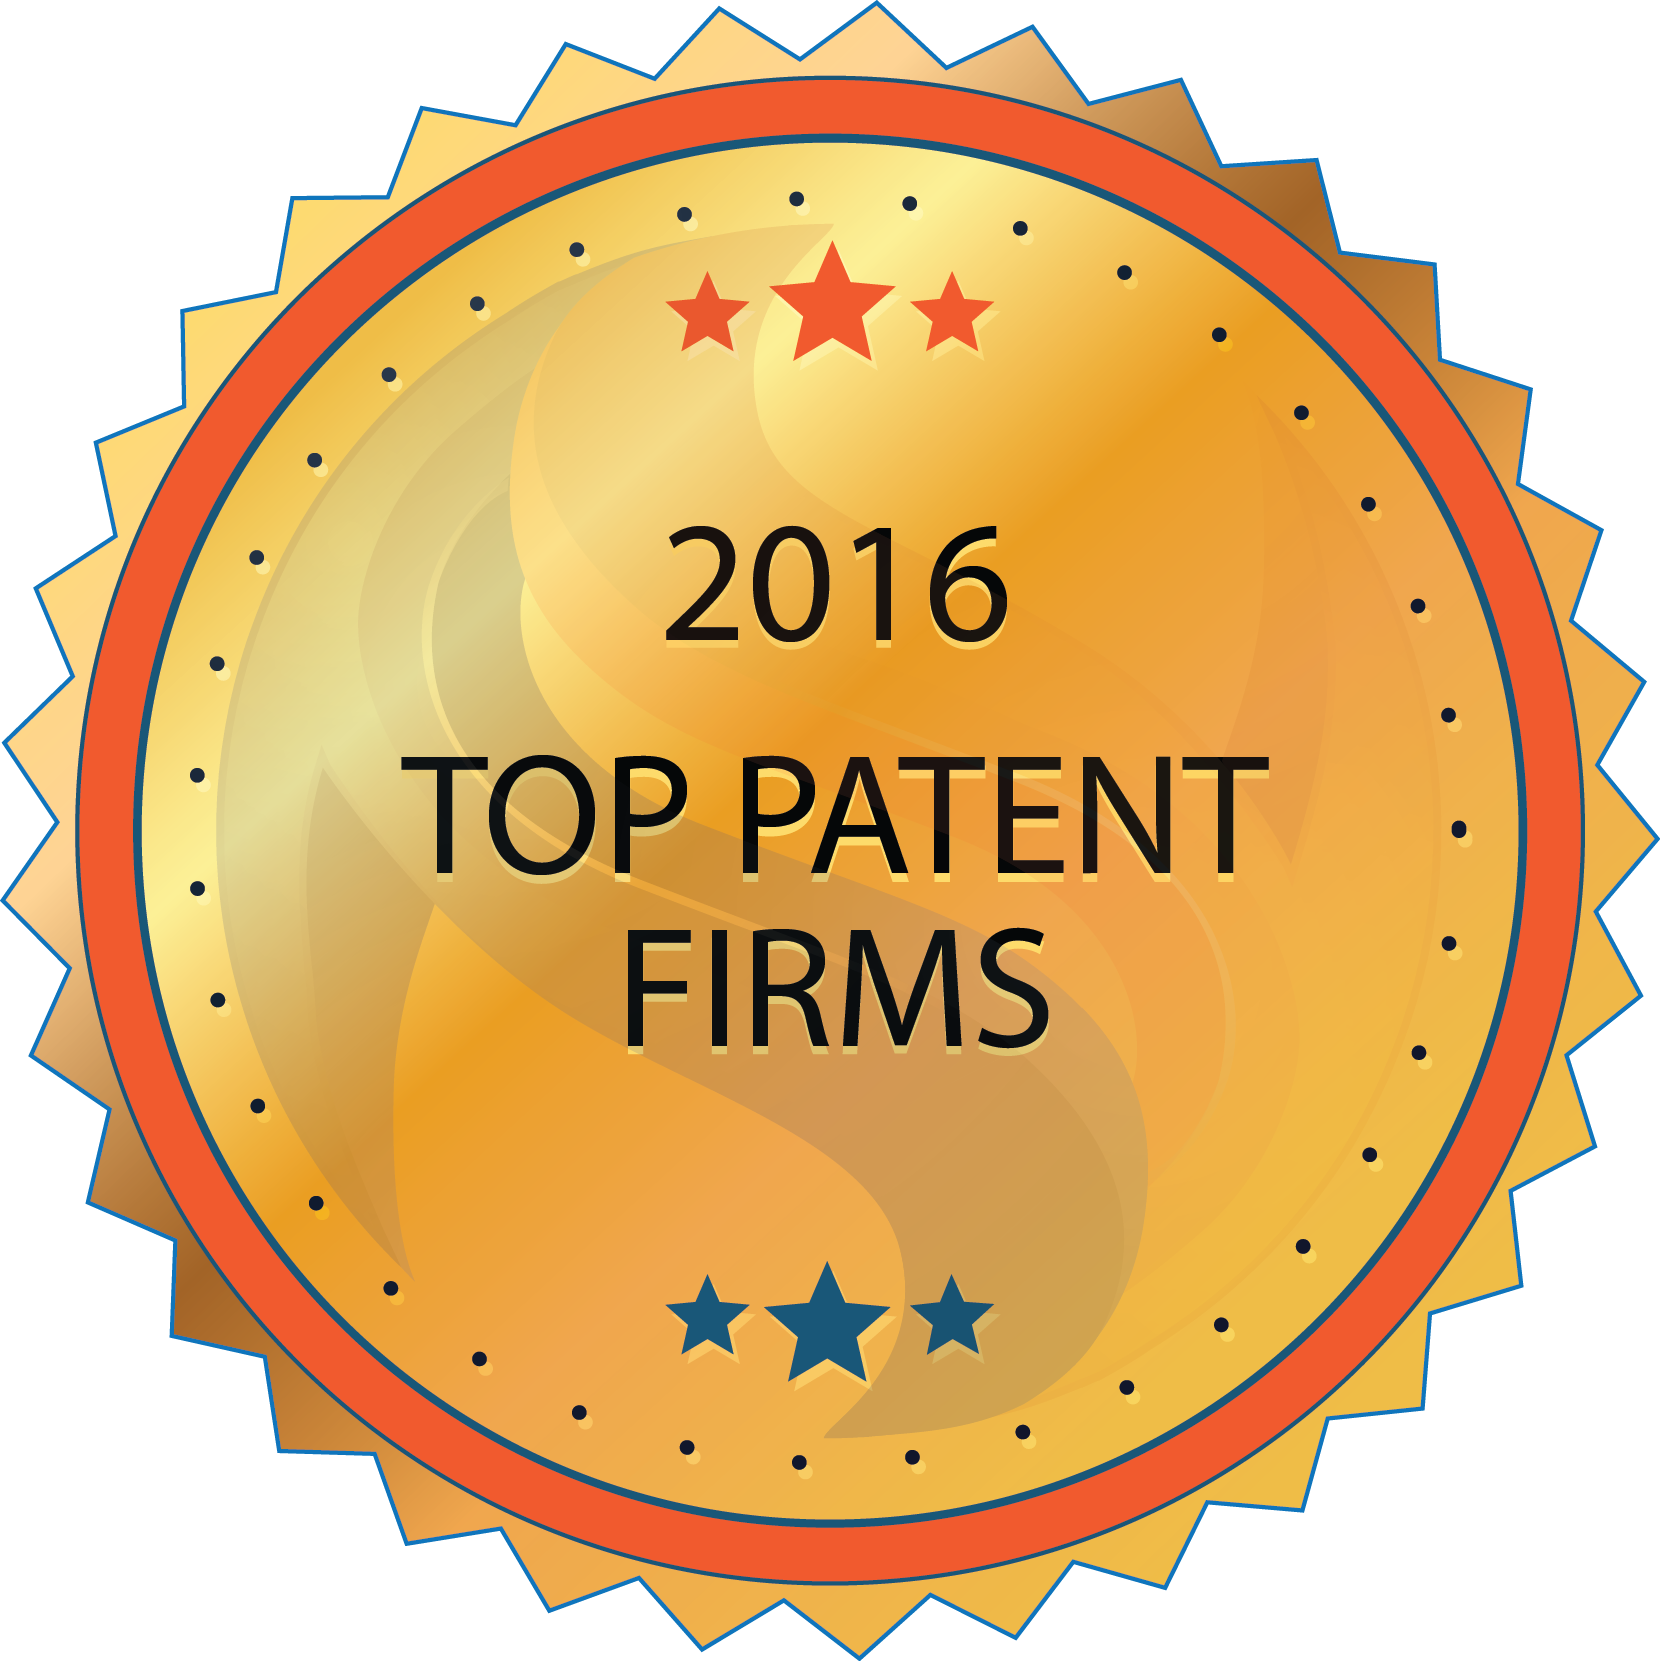 Court clipart prosecution. Patent archives harrity llp